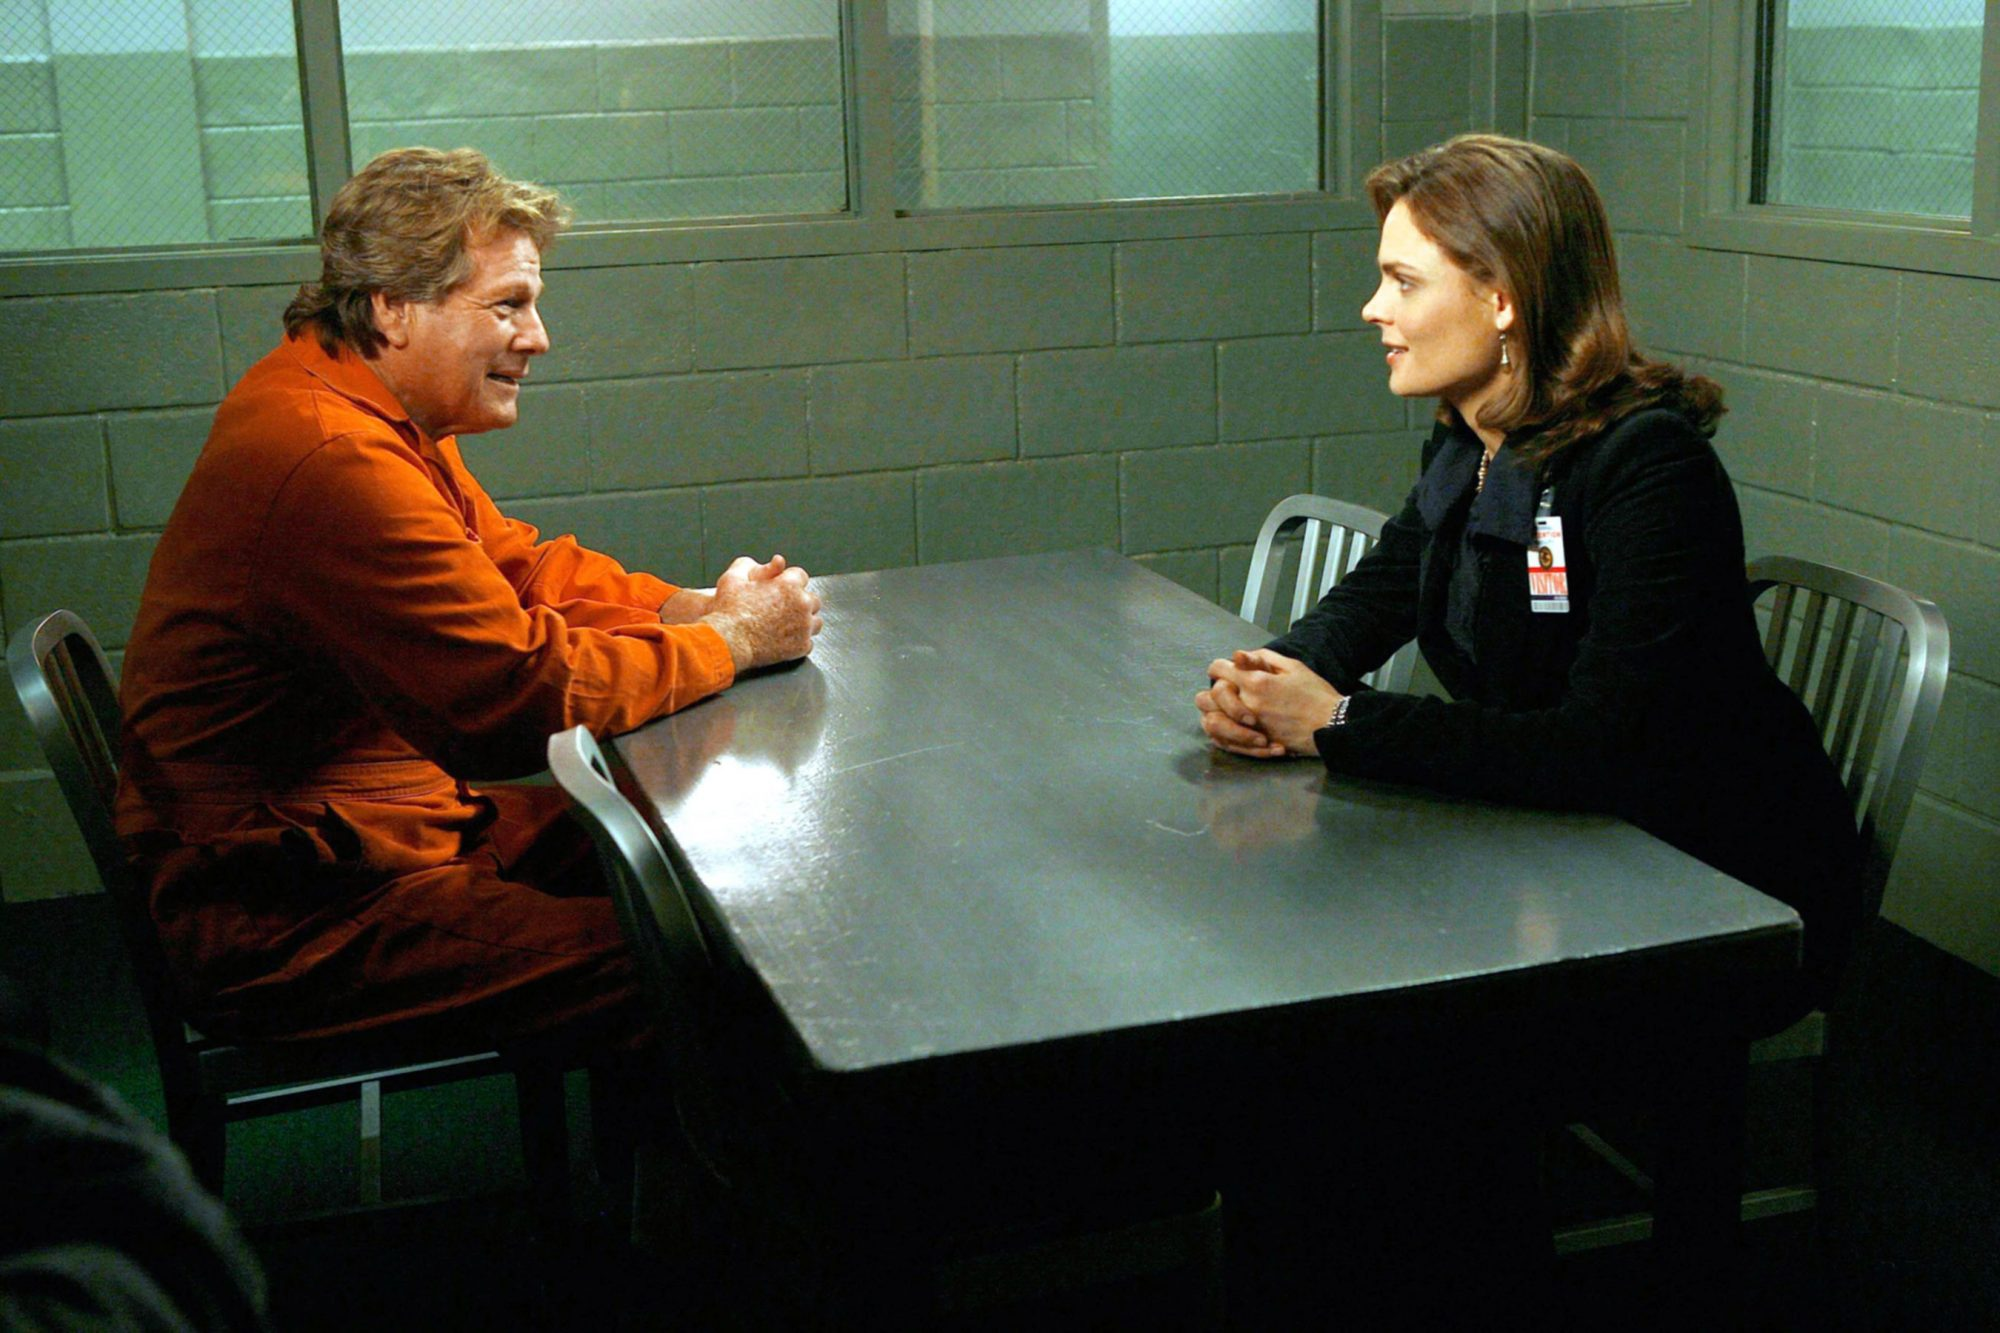 BONES, Ryan O'Neal, Emily Deschanel, 'The Knight On The Grid', (Season 3, aired Nov. 20, 2007), 2005